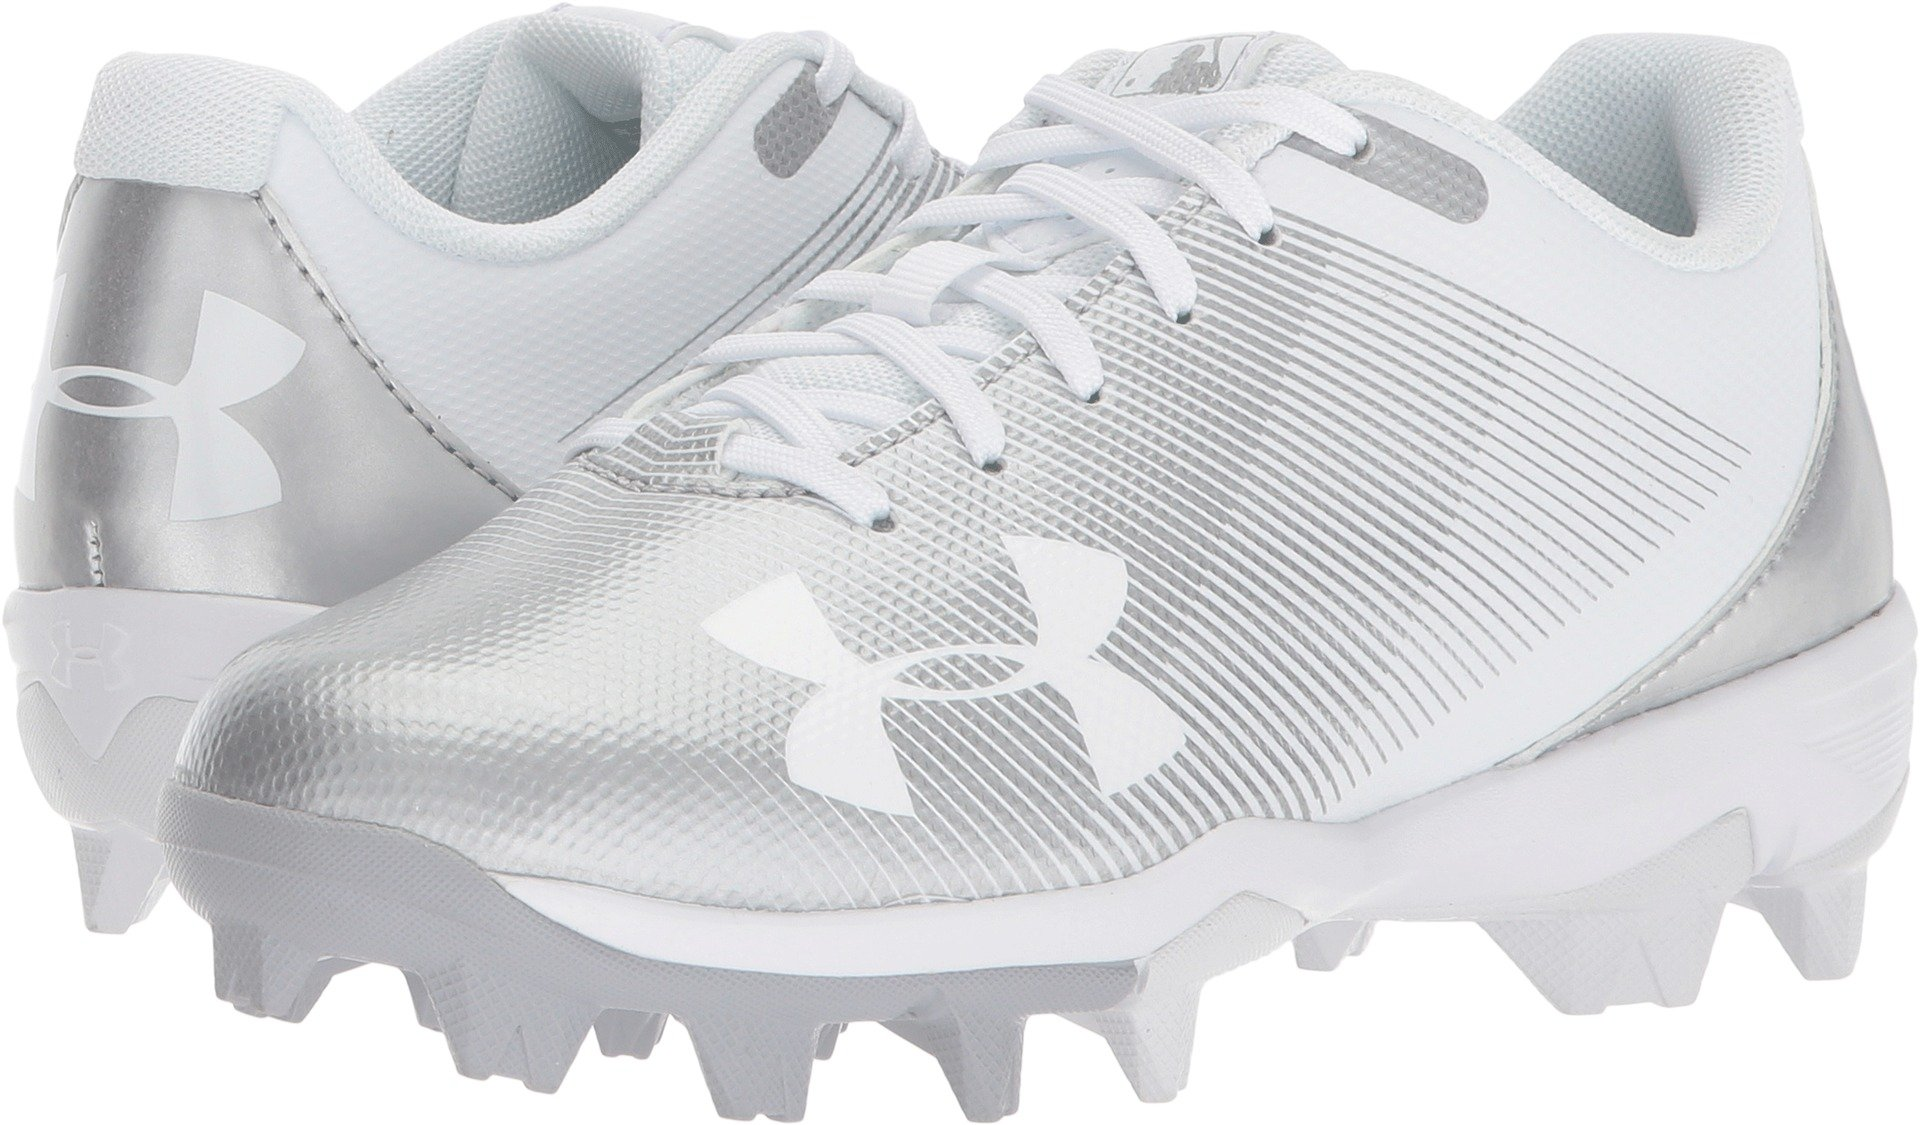 Under Armour Boys Leadoff Low Jr. RM Baseball Shoe, White (100)/White, Big Kid 6 US by Under Armour